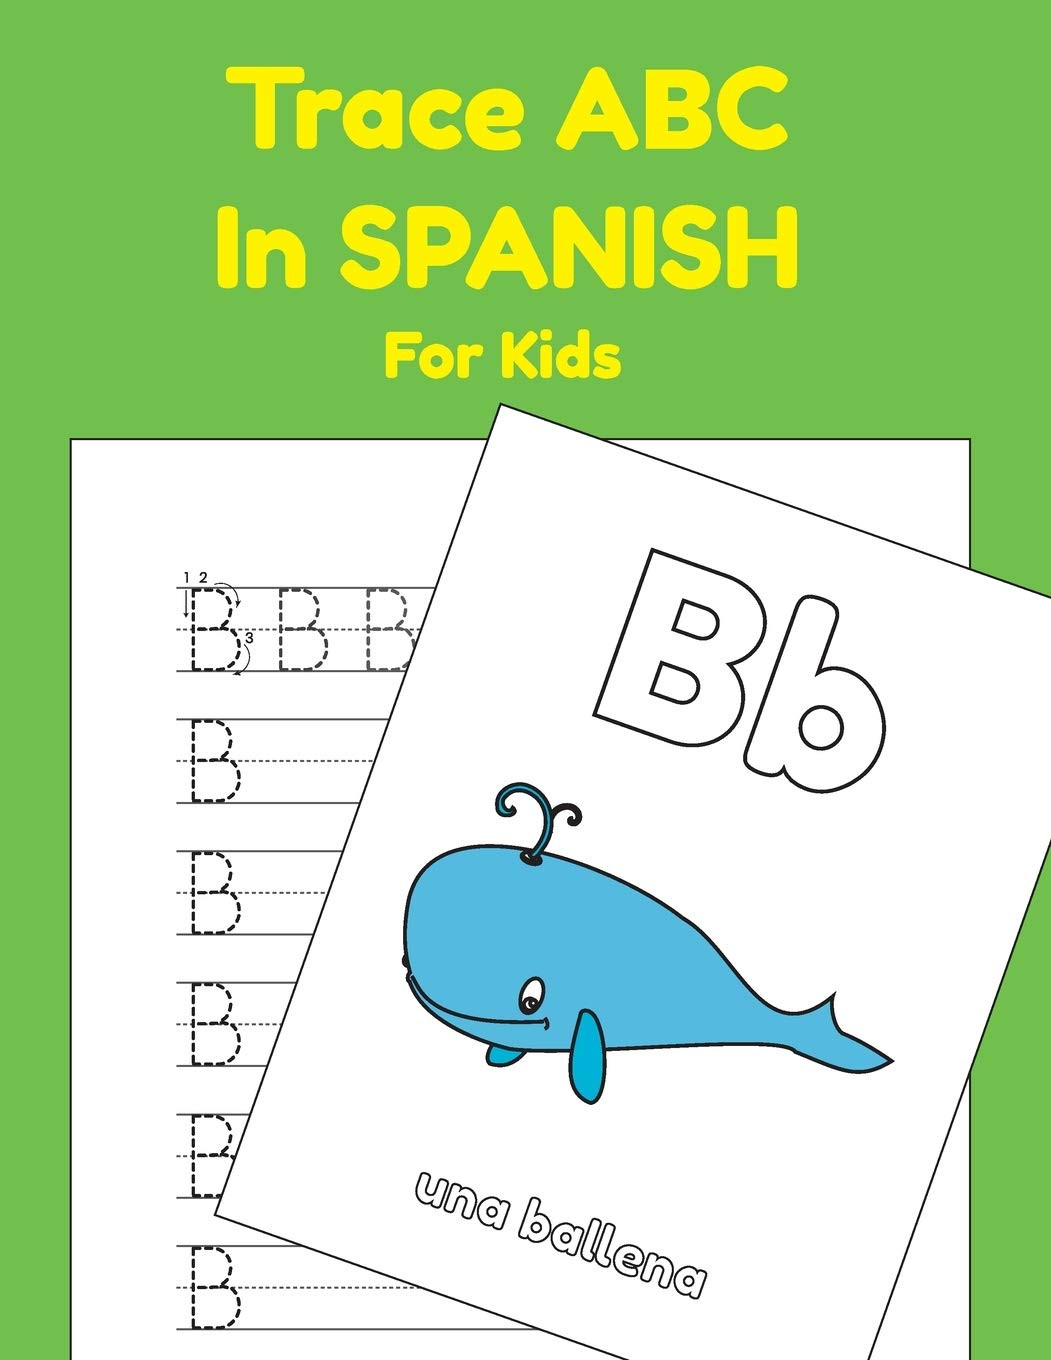 Spanish Alphabet Practice Worksheet Trace Abc In Spanish for Kids Printing Practice Worksheets